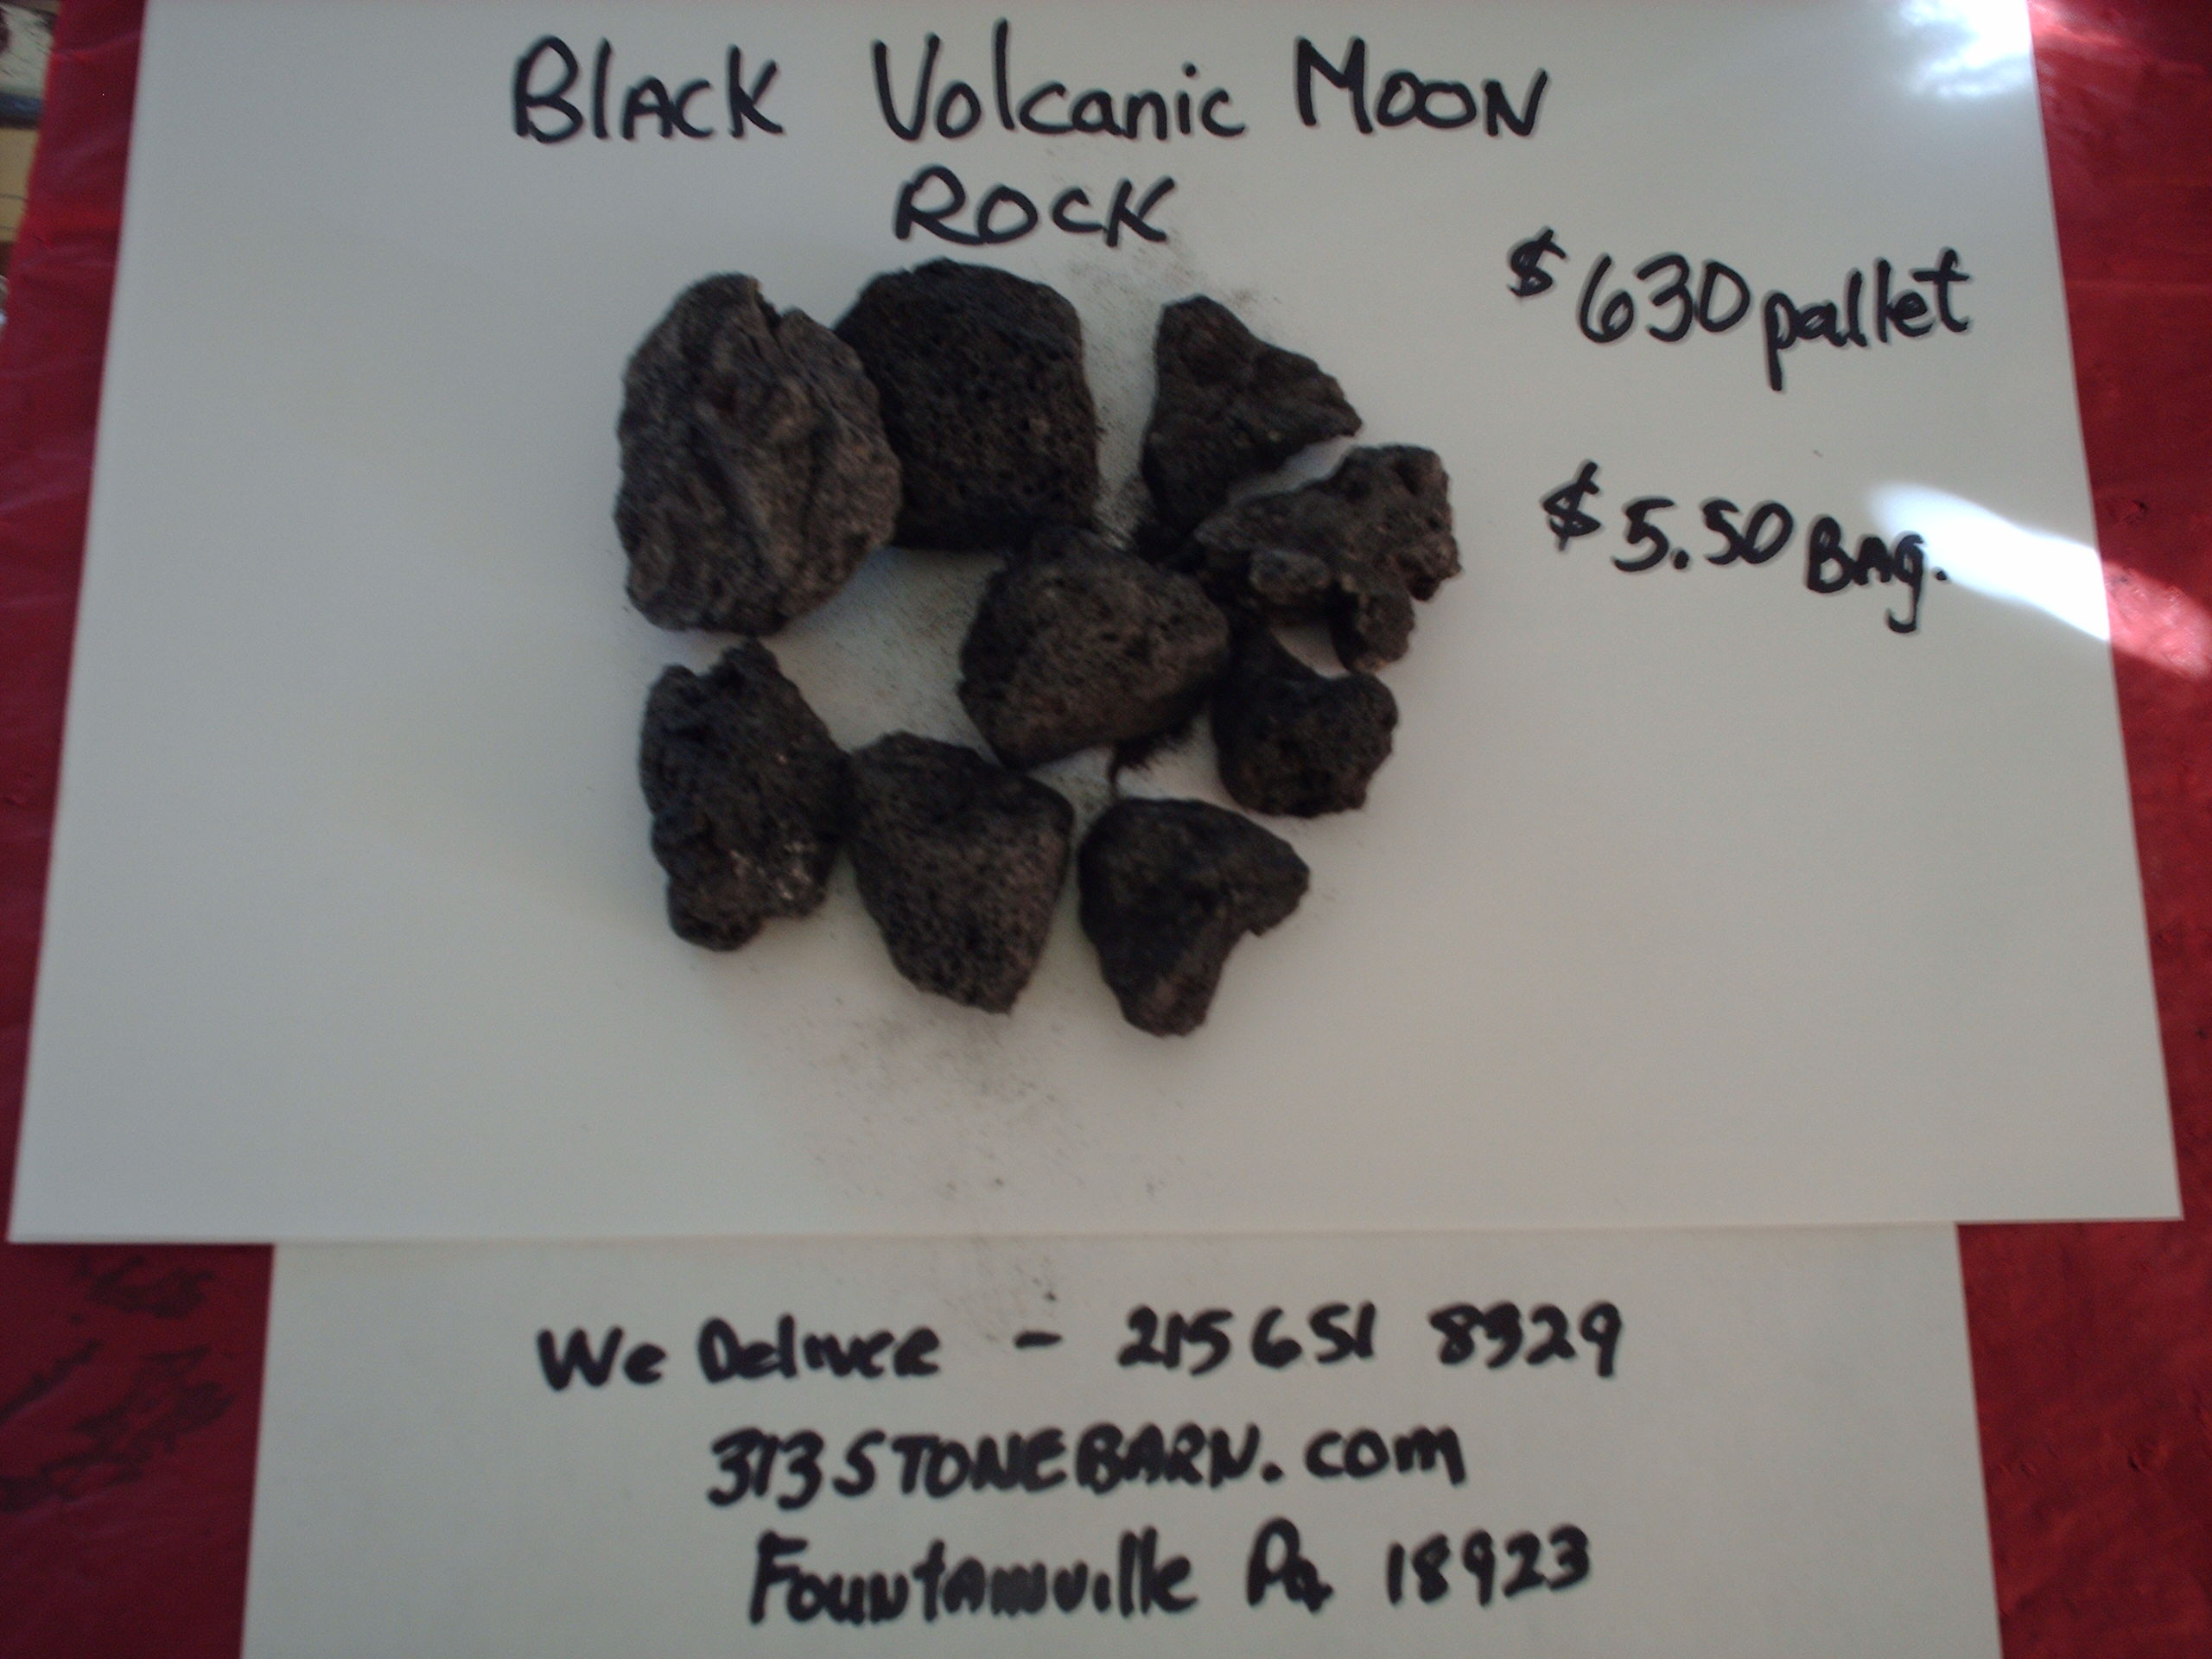 We deliver pallets of these Black Volcanic Moon Rock chips.